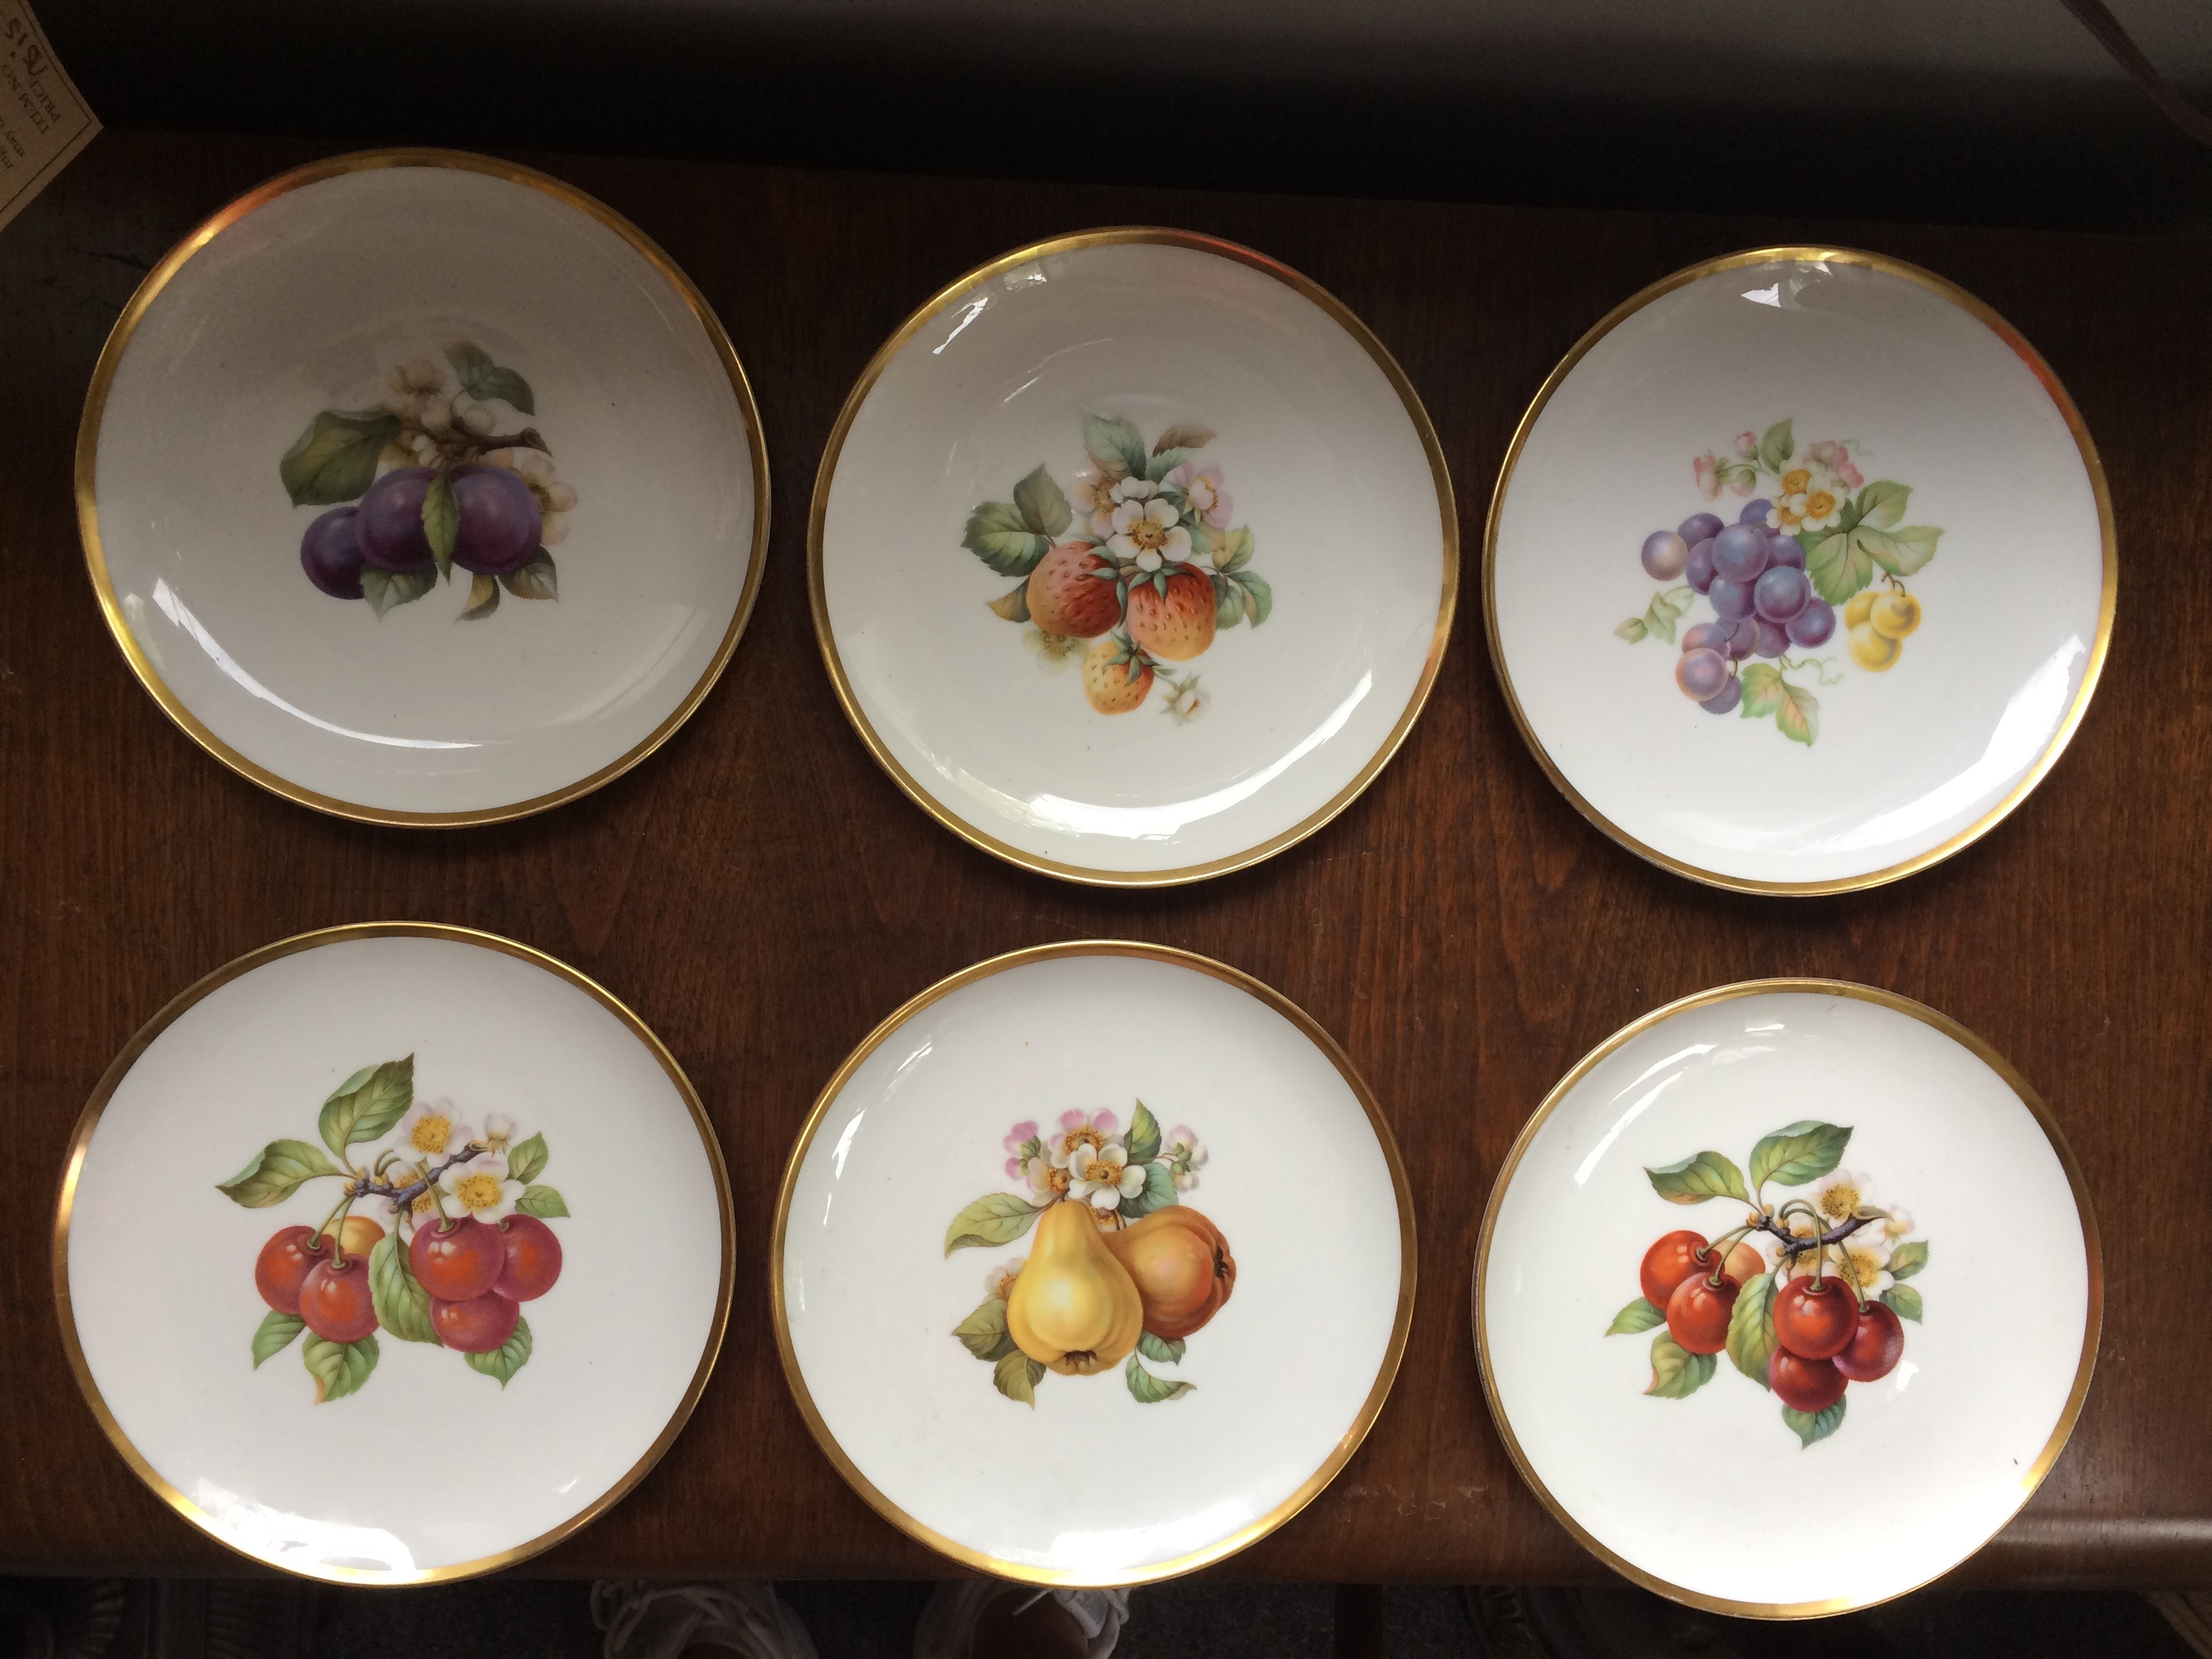 6 Hutchenreuther Fruit Plates German